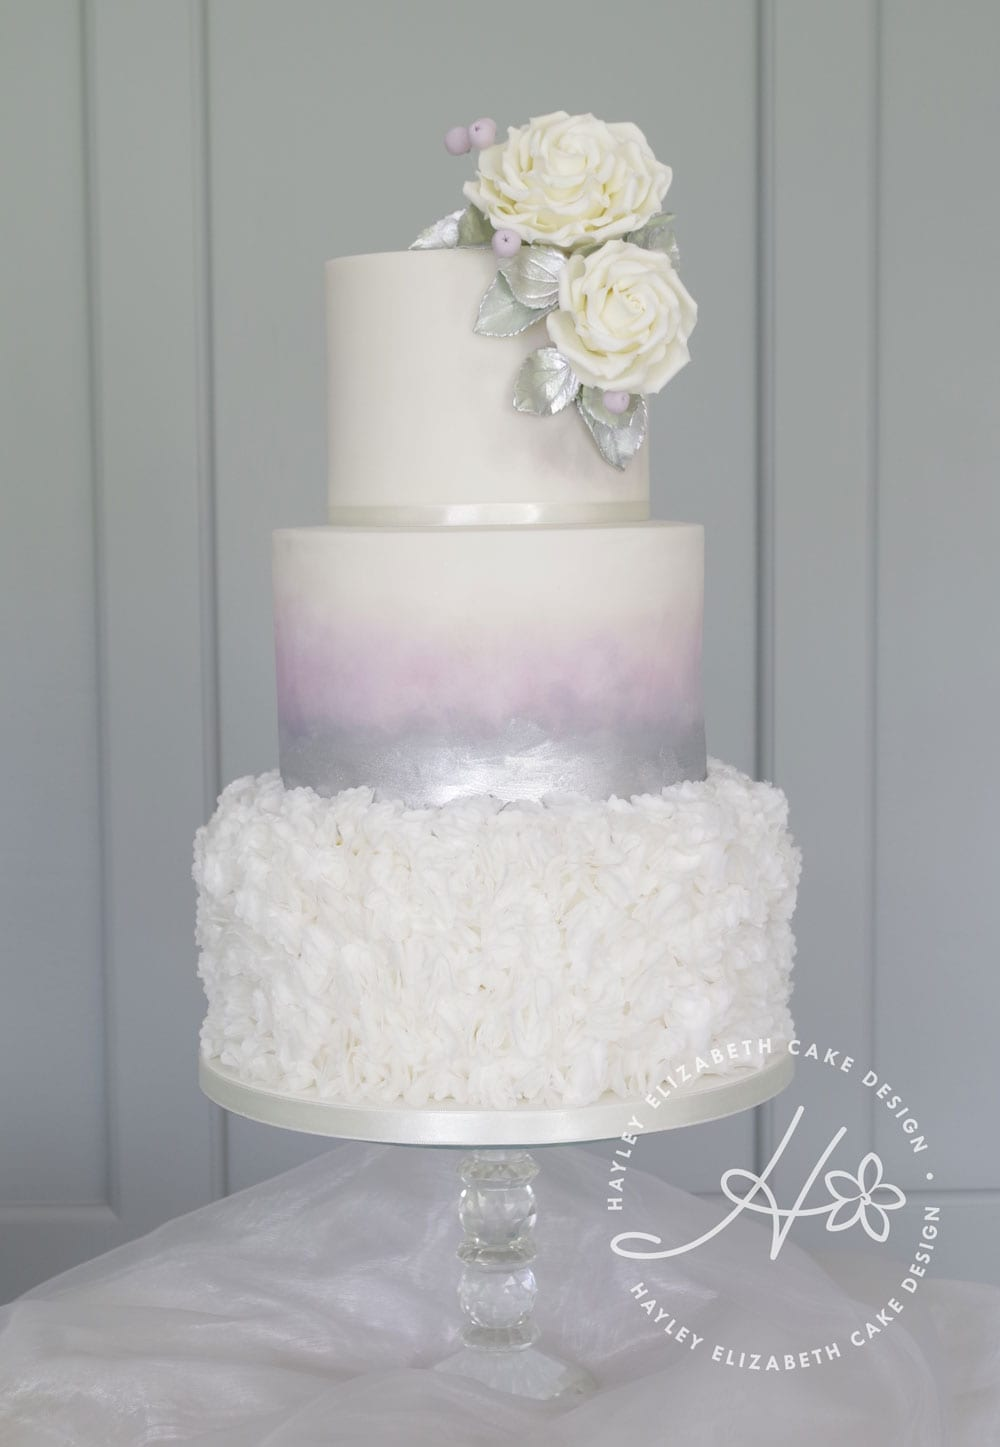 Luxury white and silver wedding cake with watercolour and silver shimmer. Sugar flowers, ruffles, silver foliage. Elegant wedding cake, wedding cake inspiration, ombre wedding cake, Hampshire and Dorset cake design